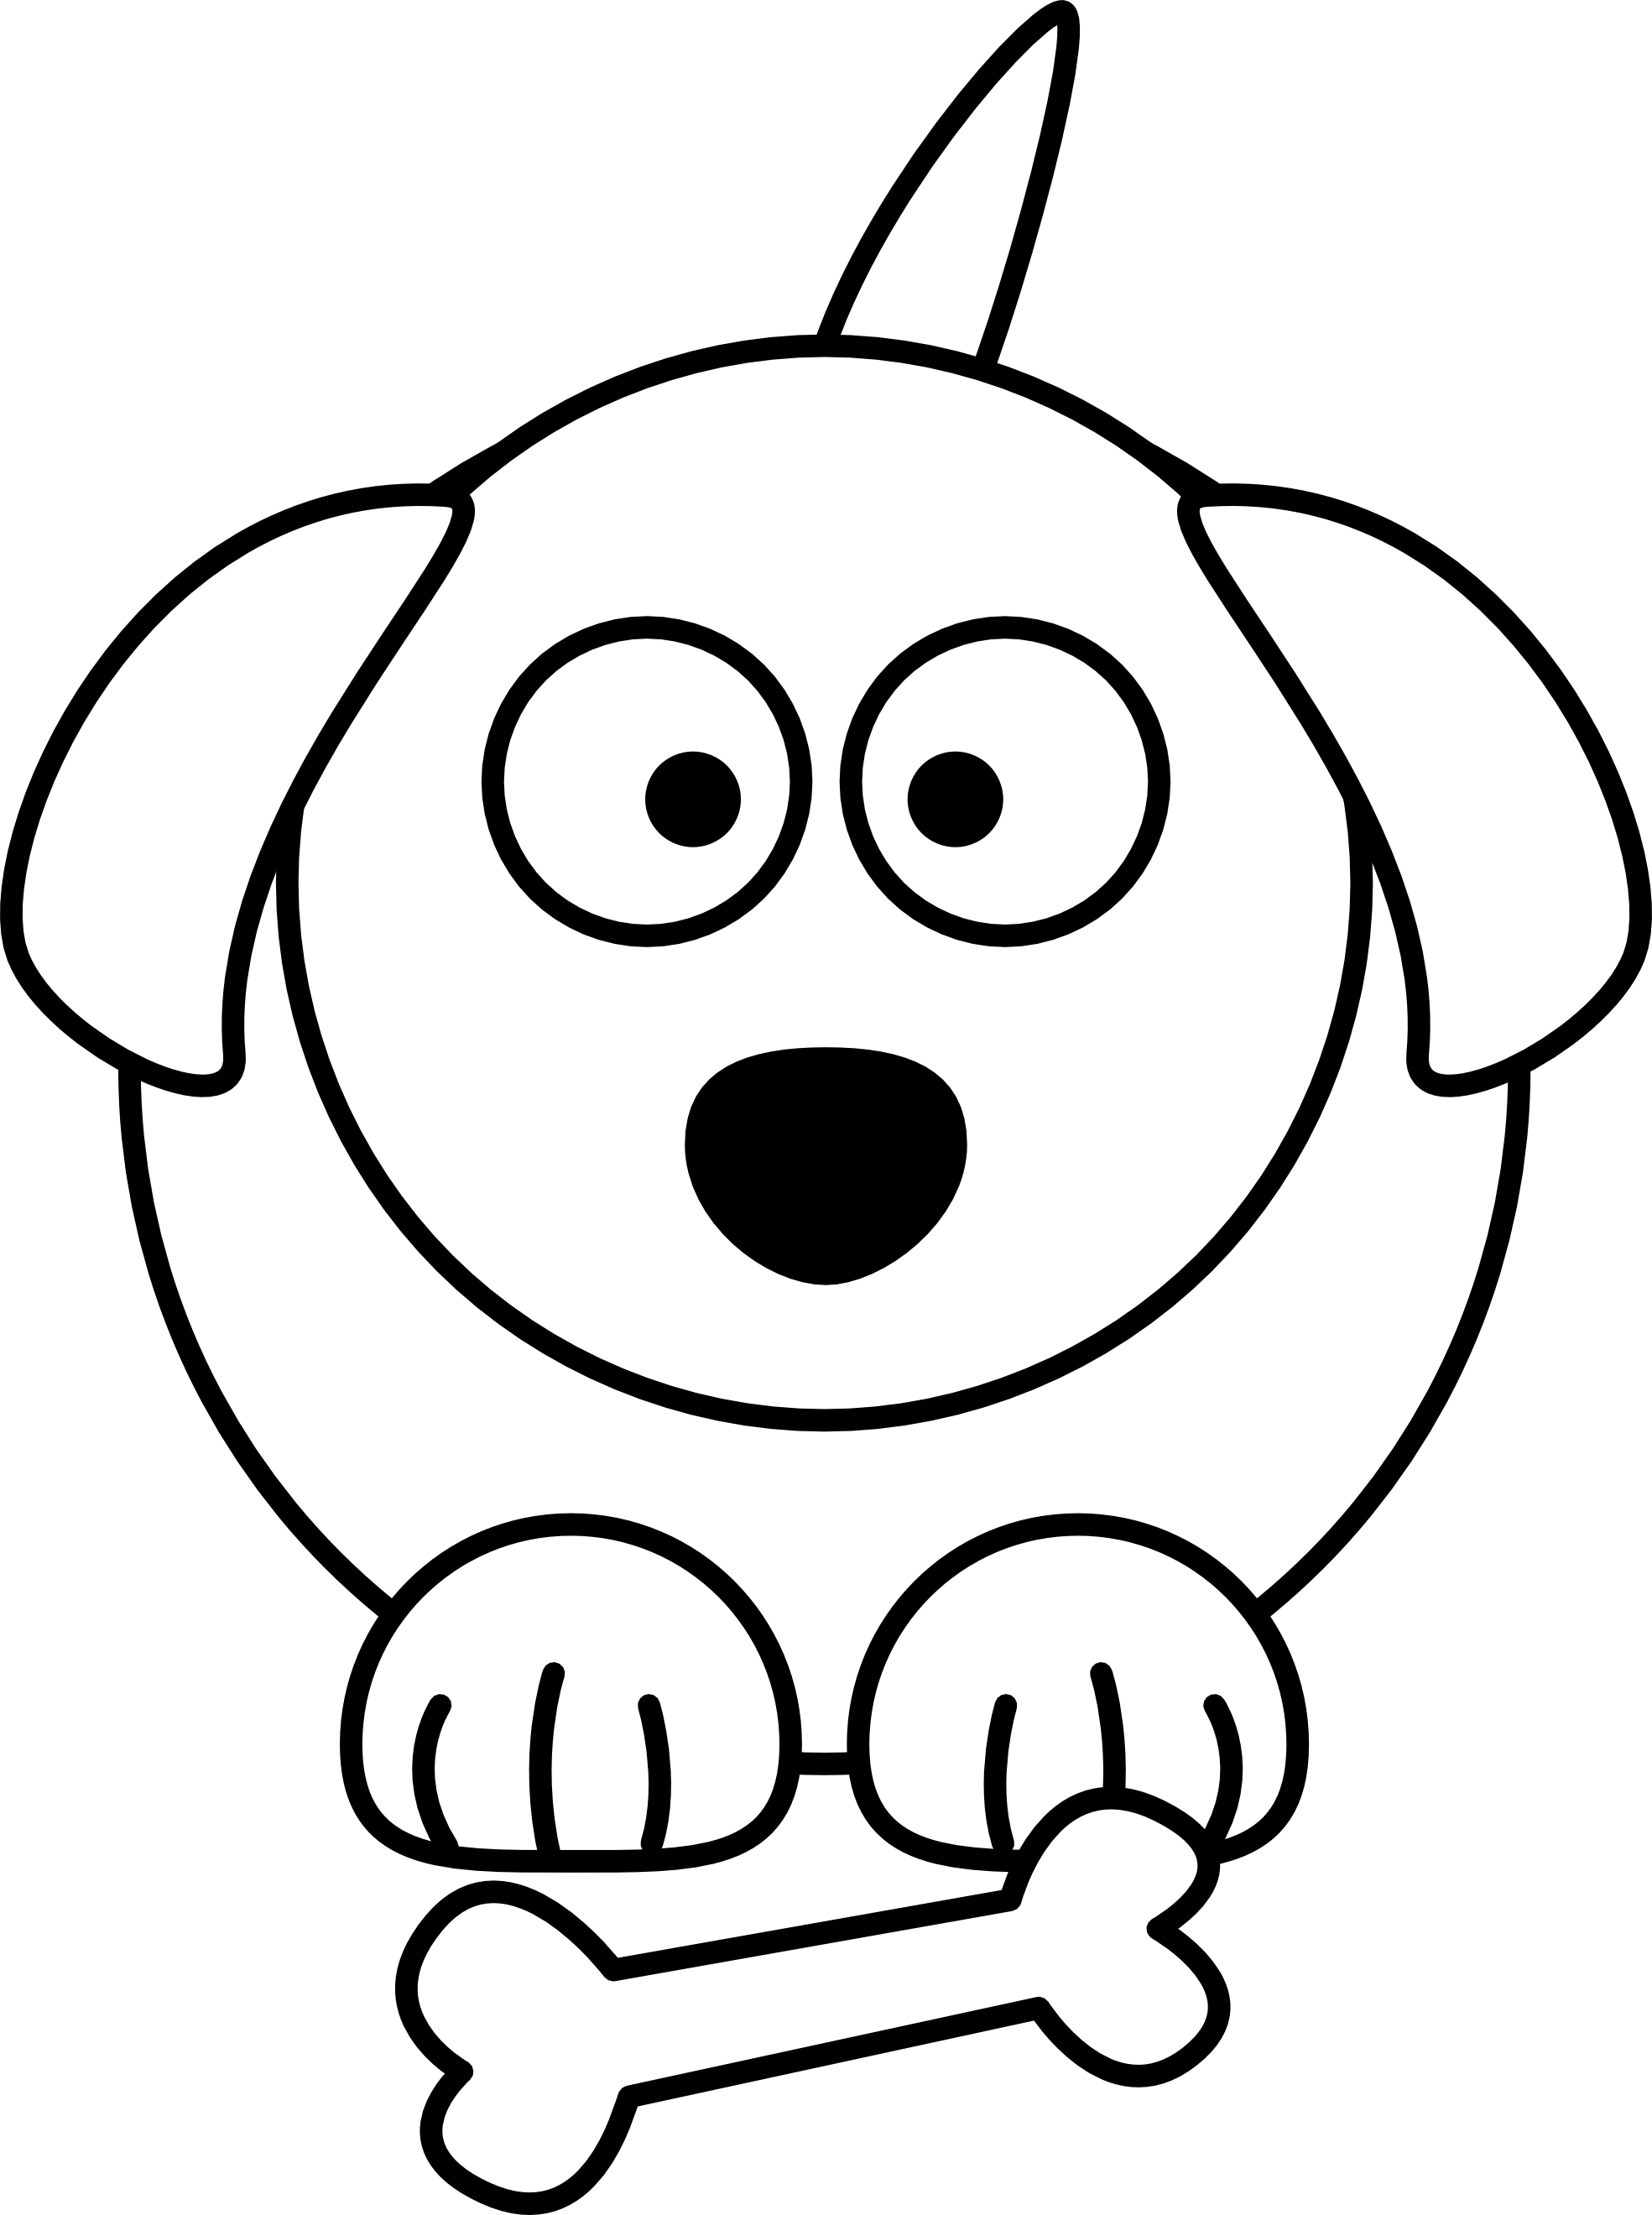 Free dogs drawings download. Doggy drawing clip download